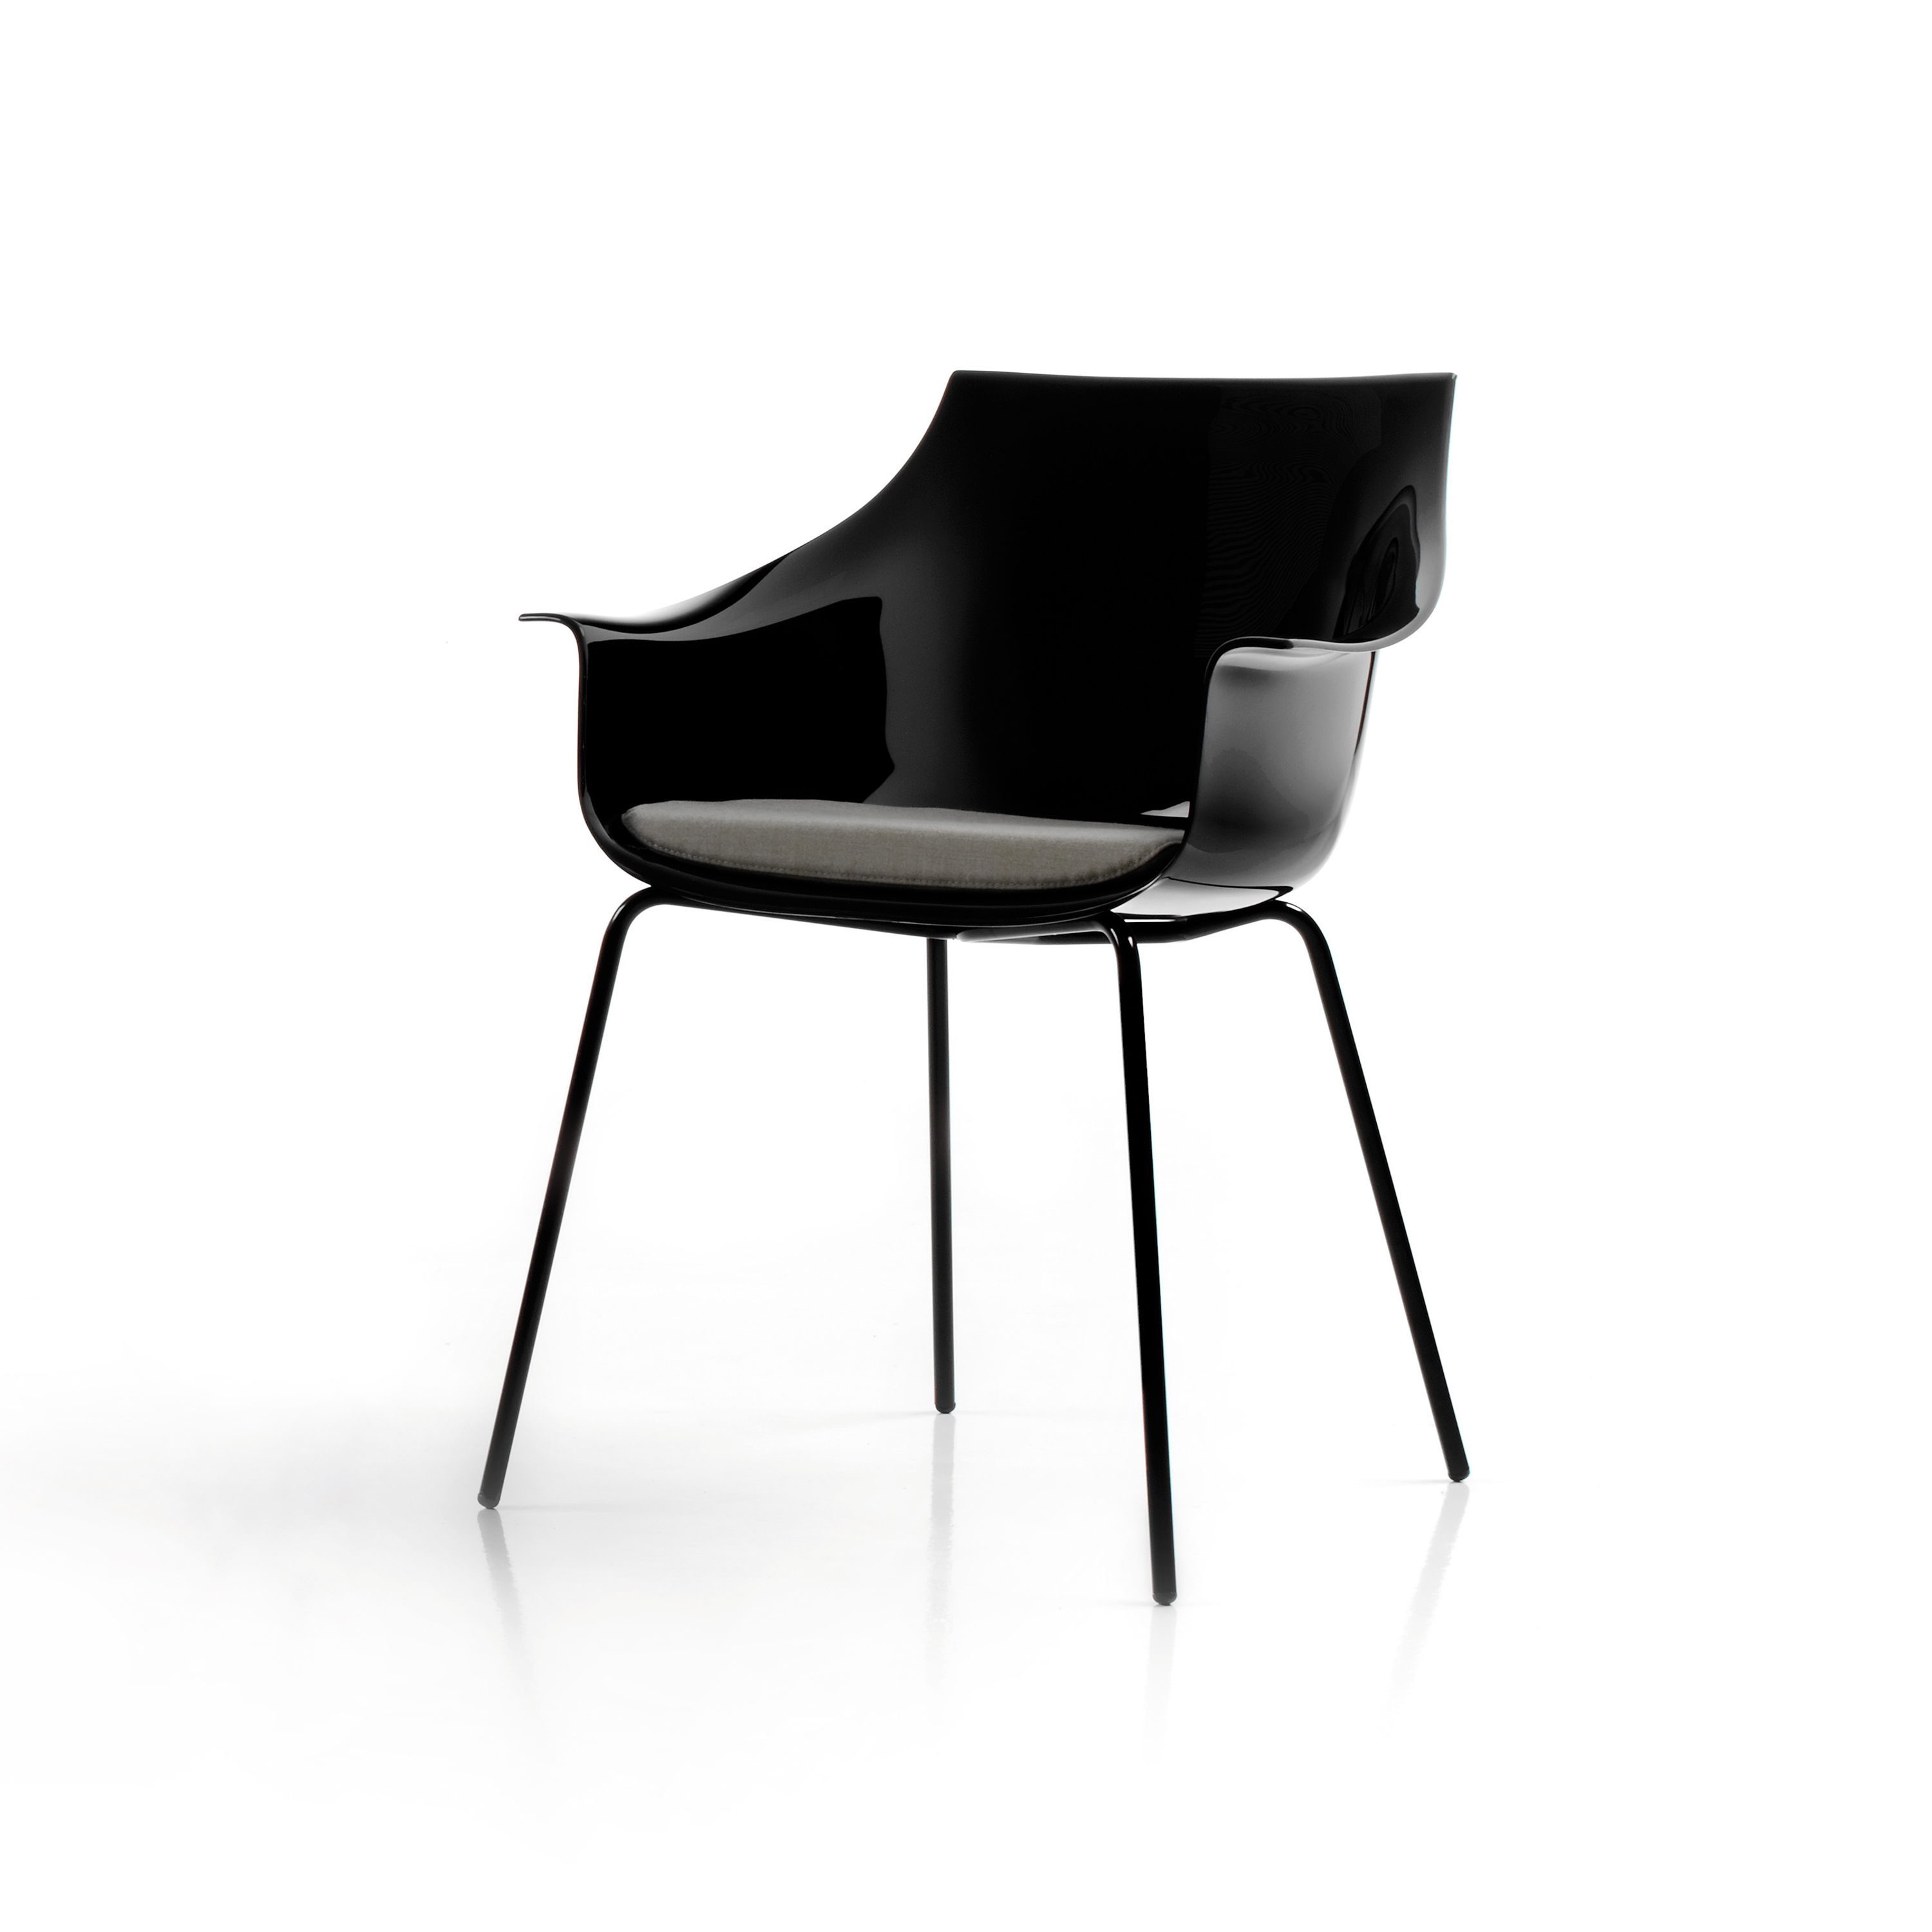 05S_Estel_Comfort&Relax_Chairs&Stool_Kab